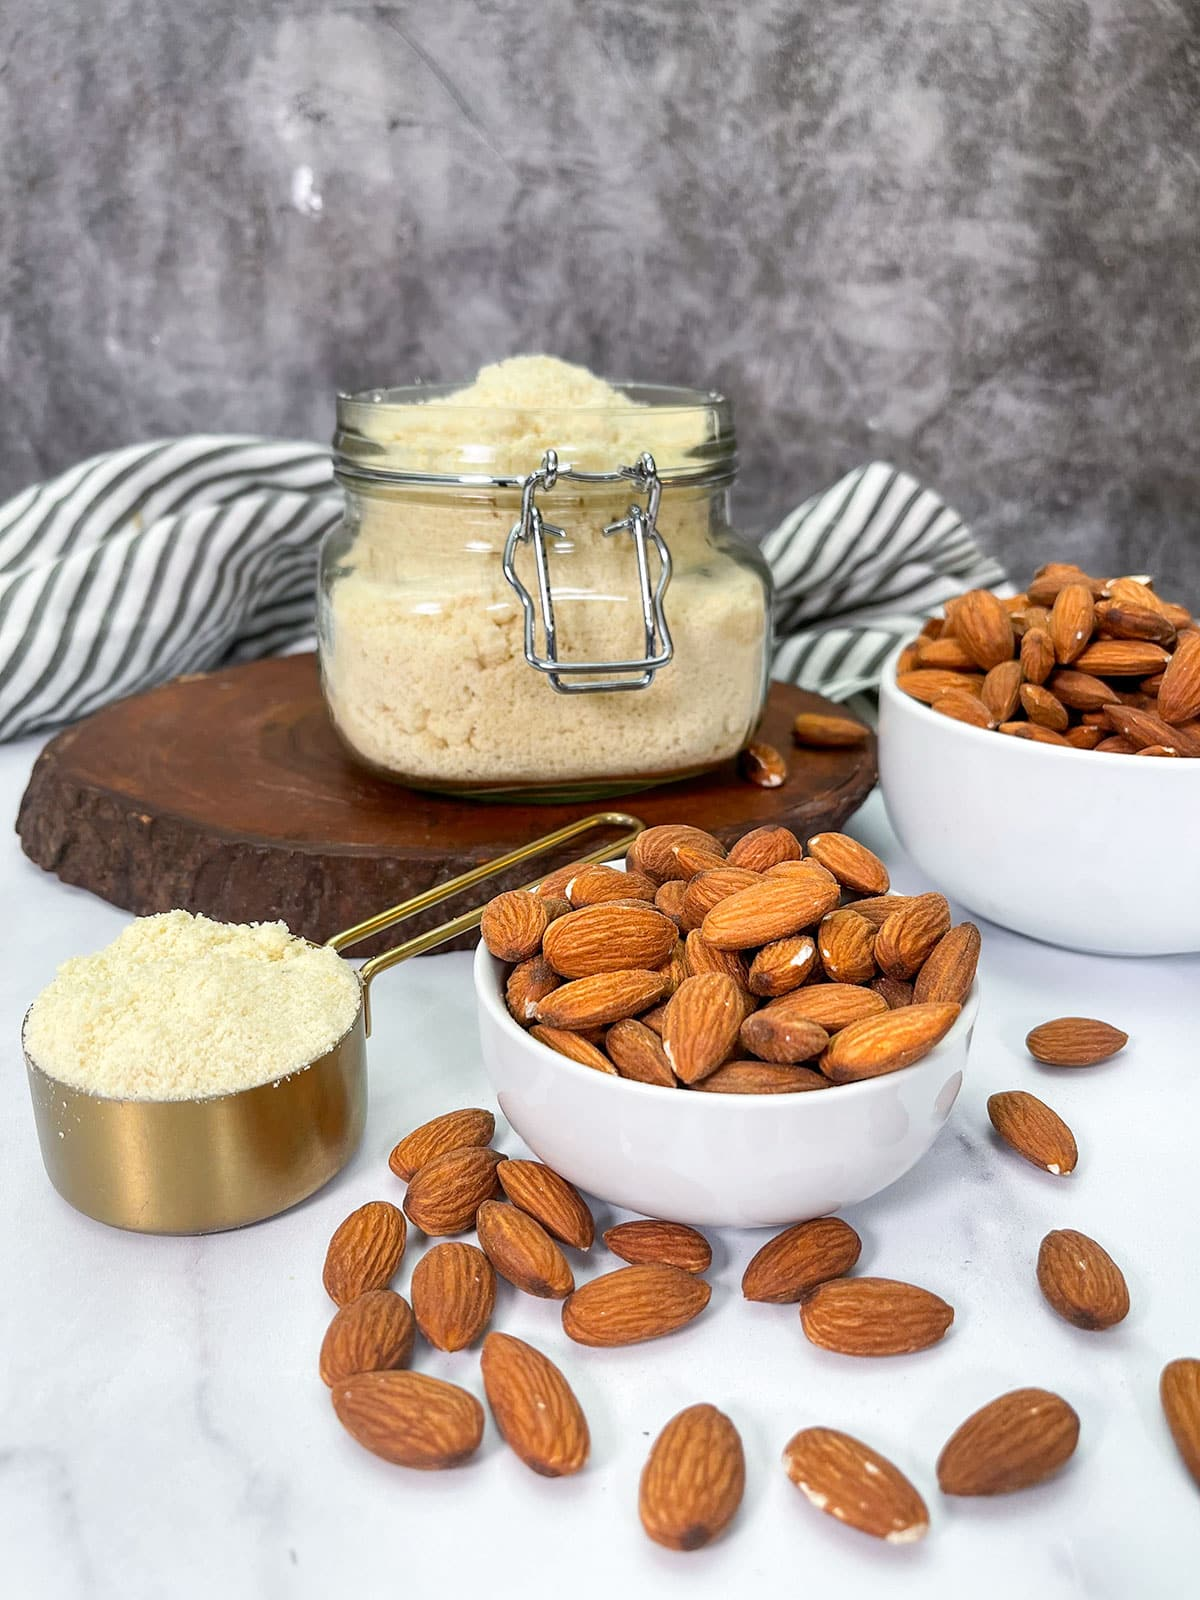 almond flour, almond in white bowl, and golden measuring cup